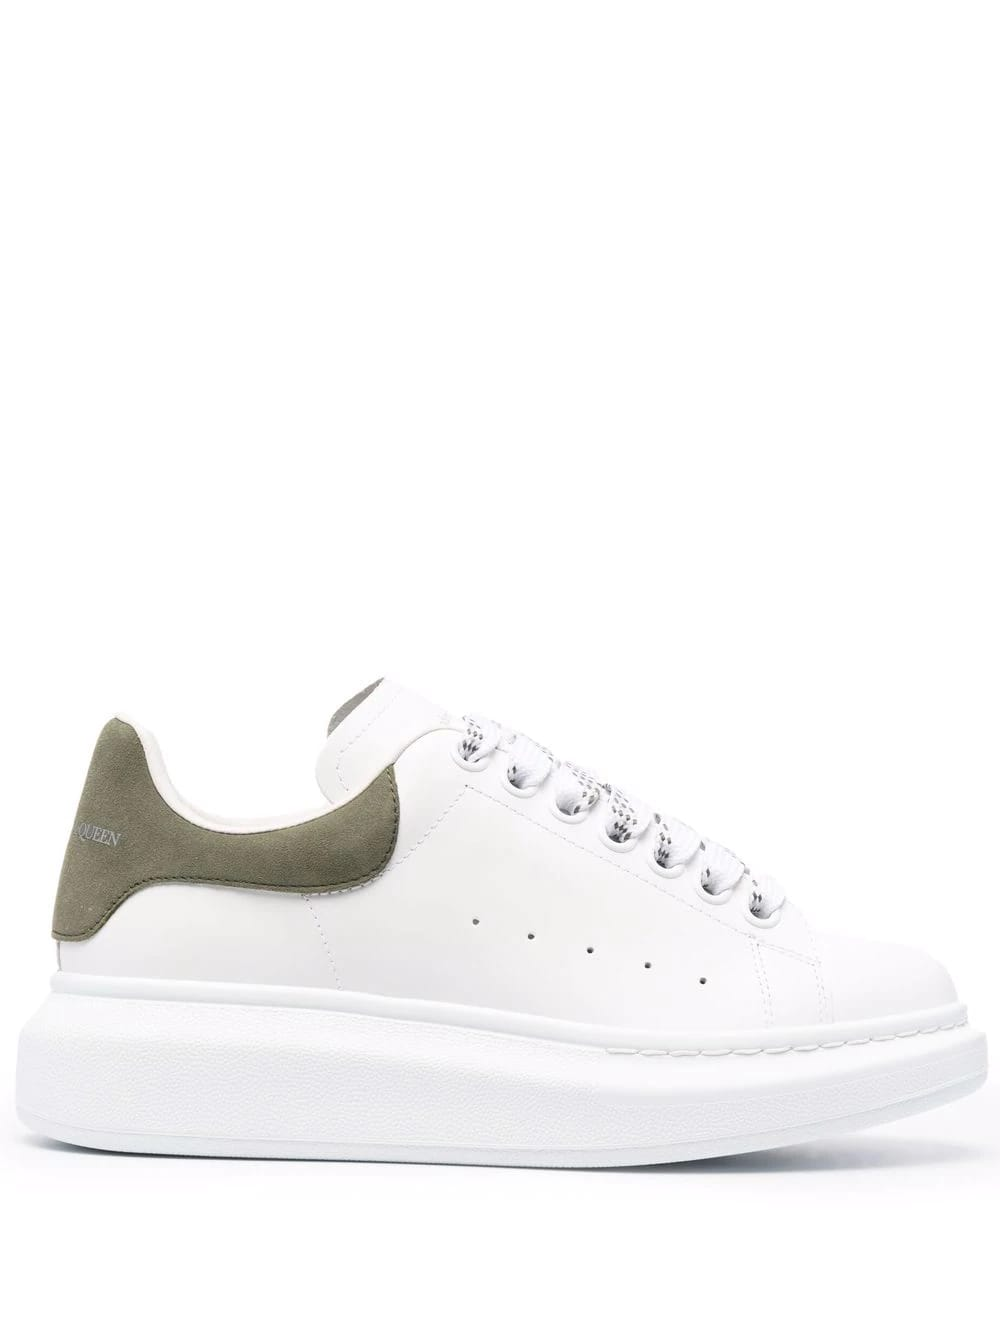 Alexander McQueen Woman White And Khaki Oversize Sneakers